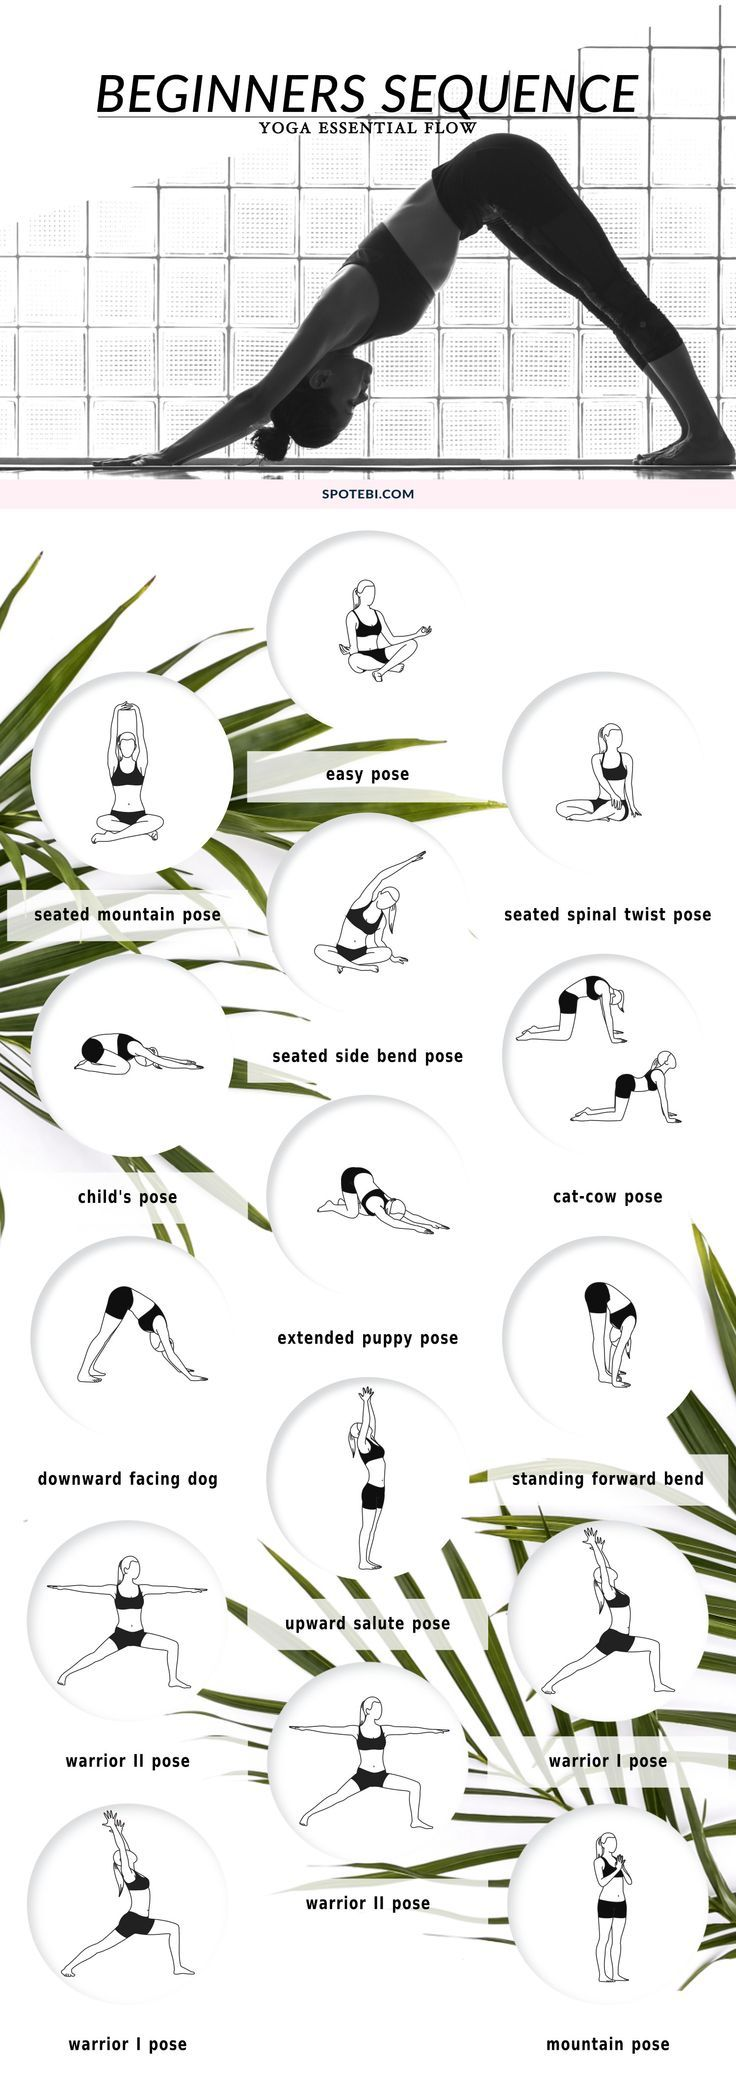 Are you new to yoga? This beginners yoga sequence is perfect if you're looking to achieve more flexibility and get in touch with your spiritual side. Stretch your body, practice mindfulness and let go of emotional baggage.